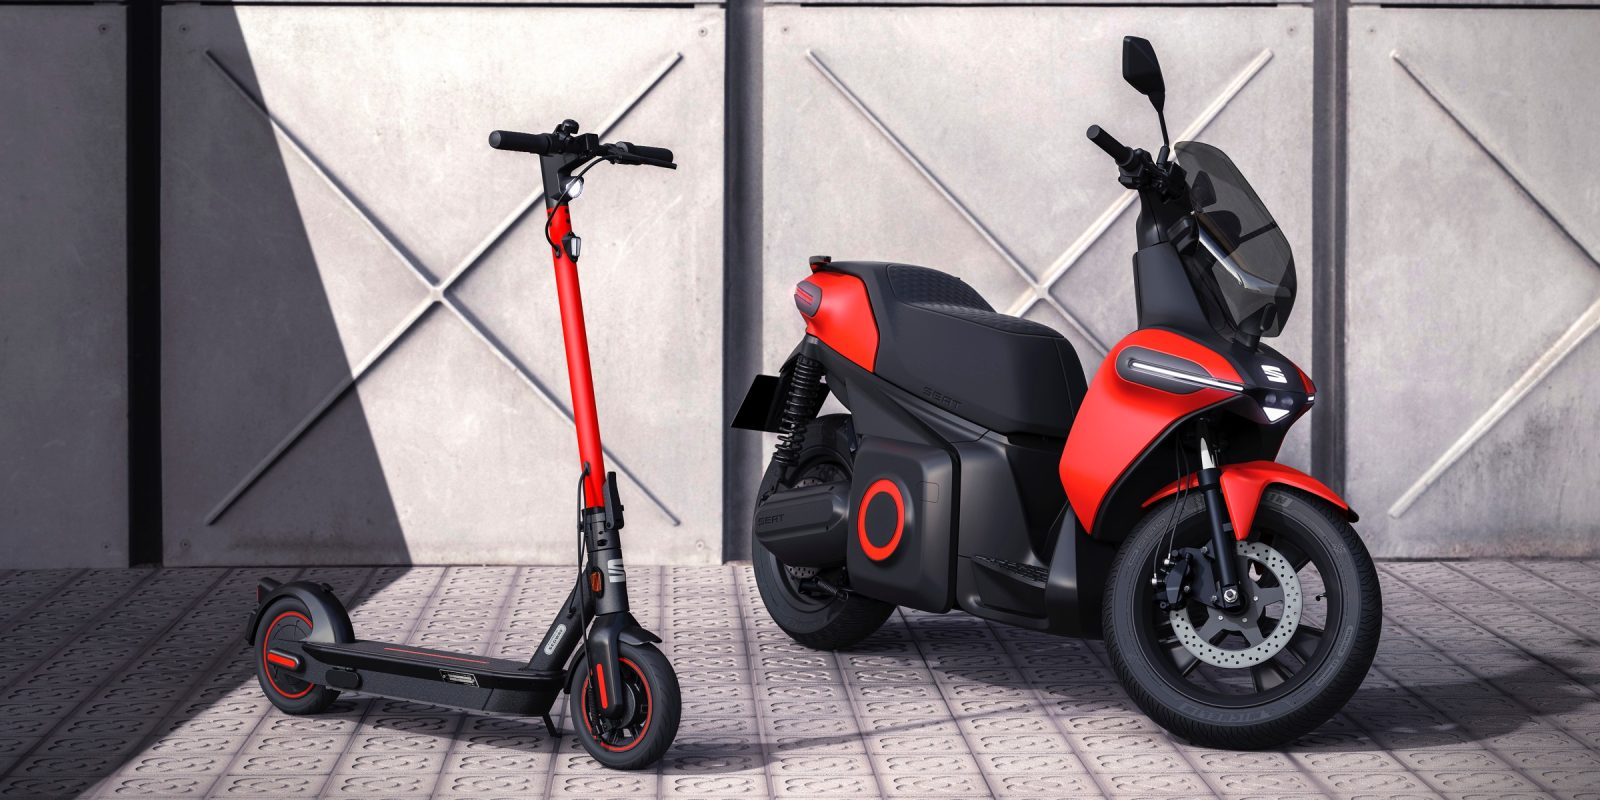 This is why so many car companies are making electric scooters and e-bikes